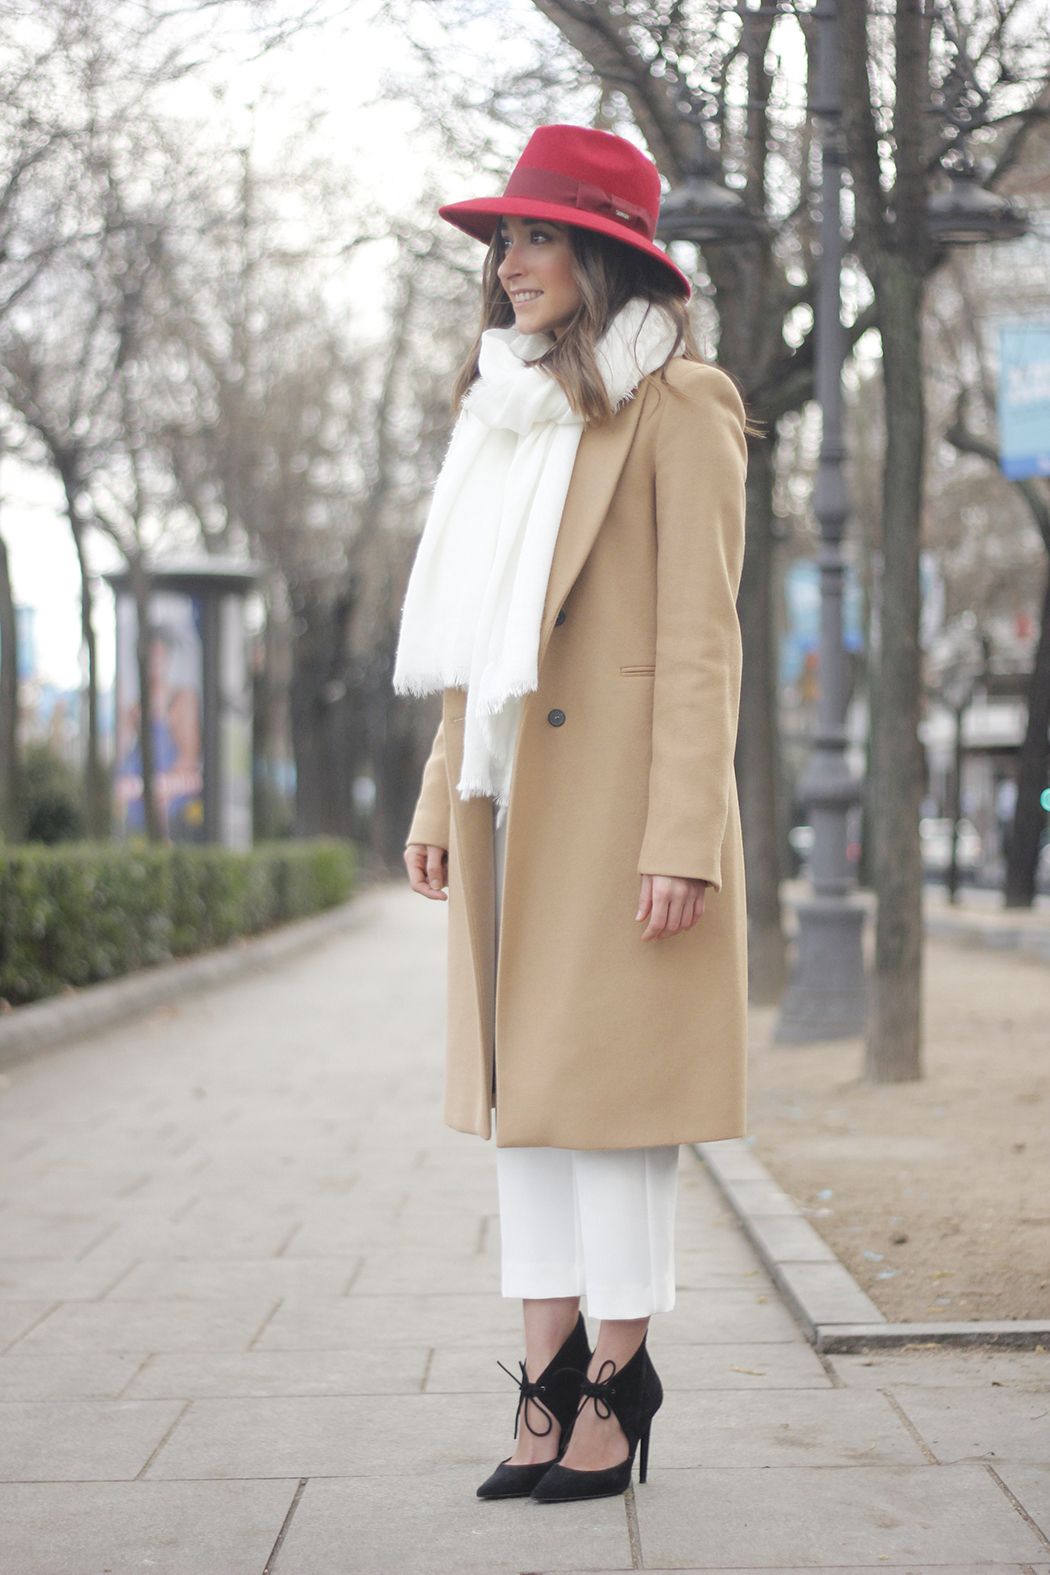 Camel Coat Red Hat Black Heels White pants streetstyle outfit20